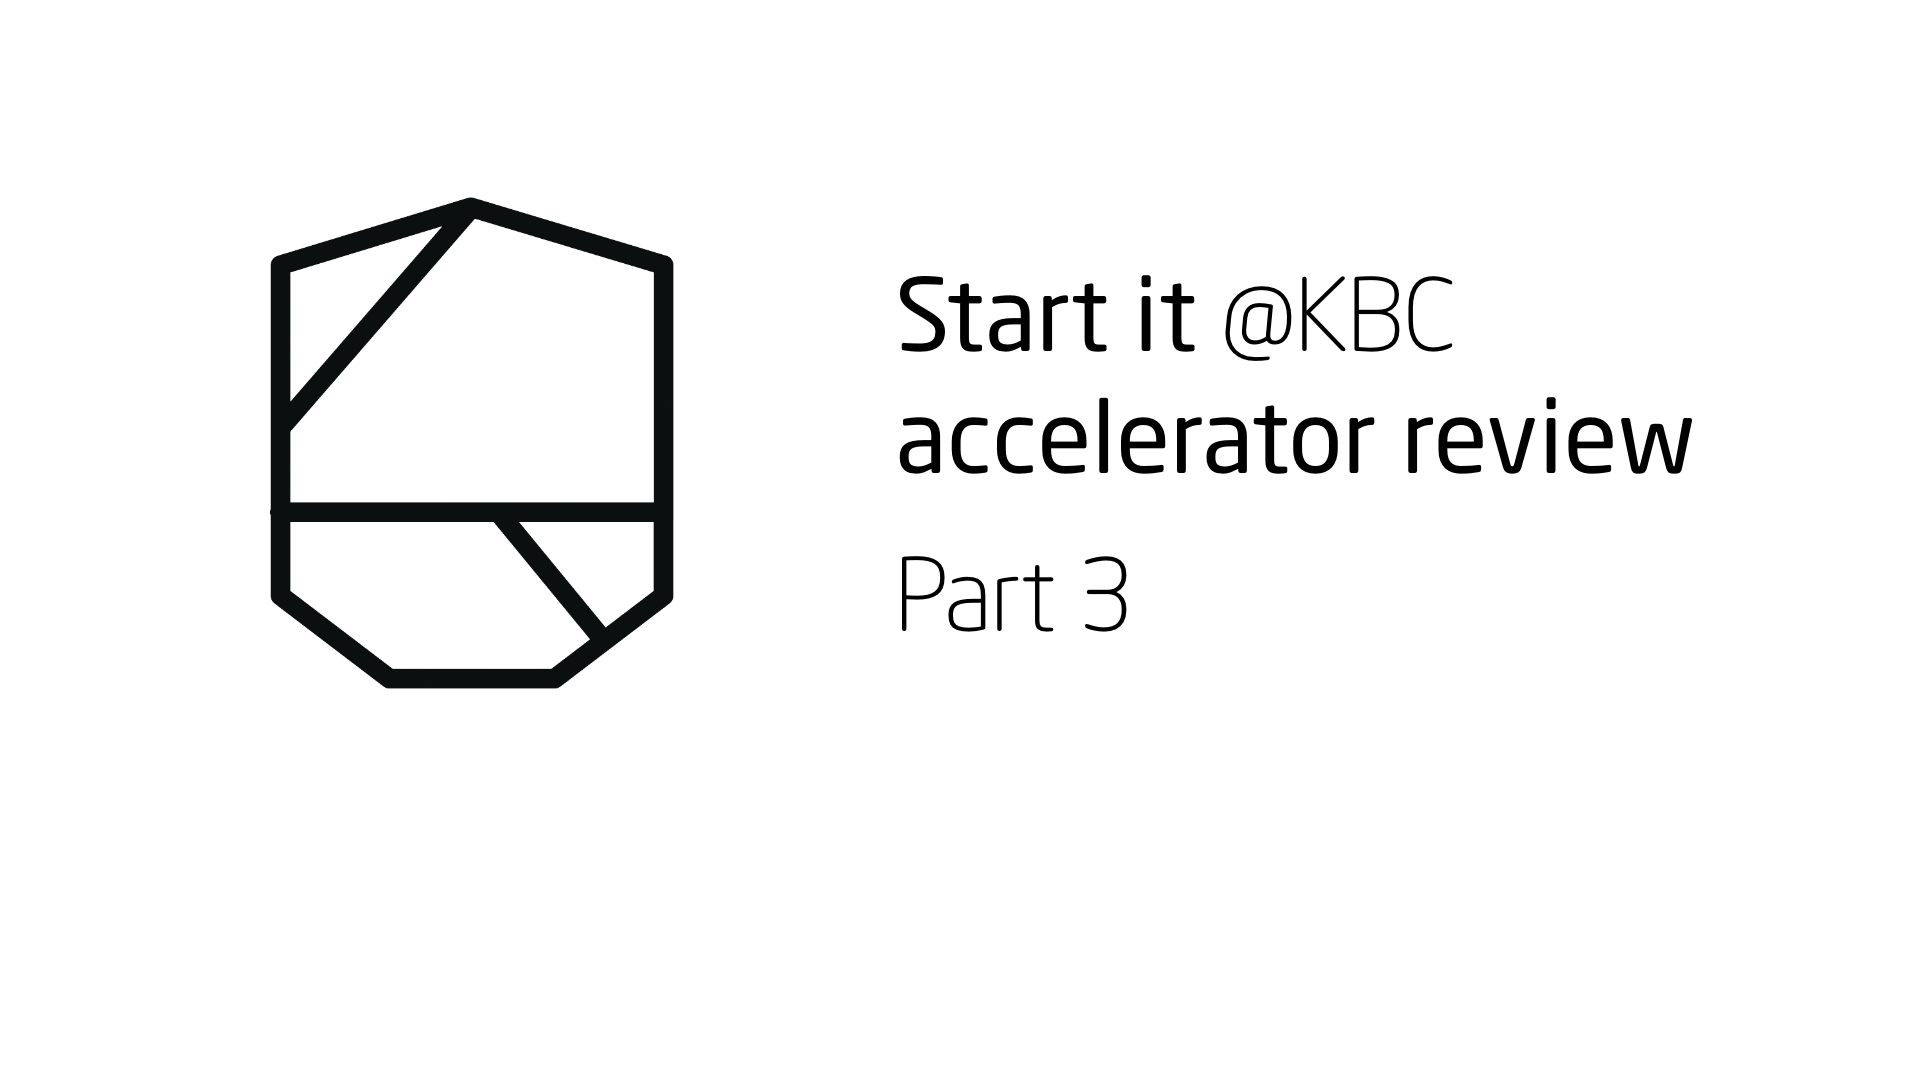 Start it KBC Startup Accelerator review Part 3